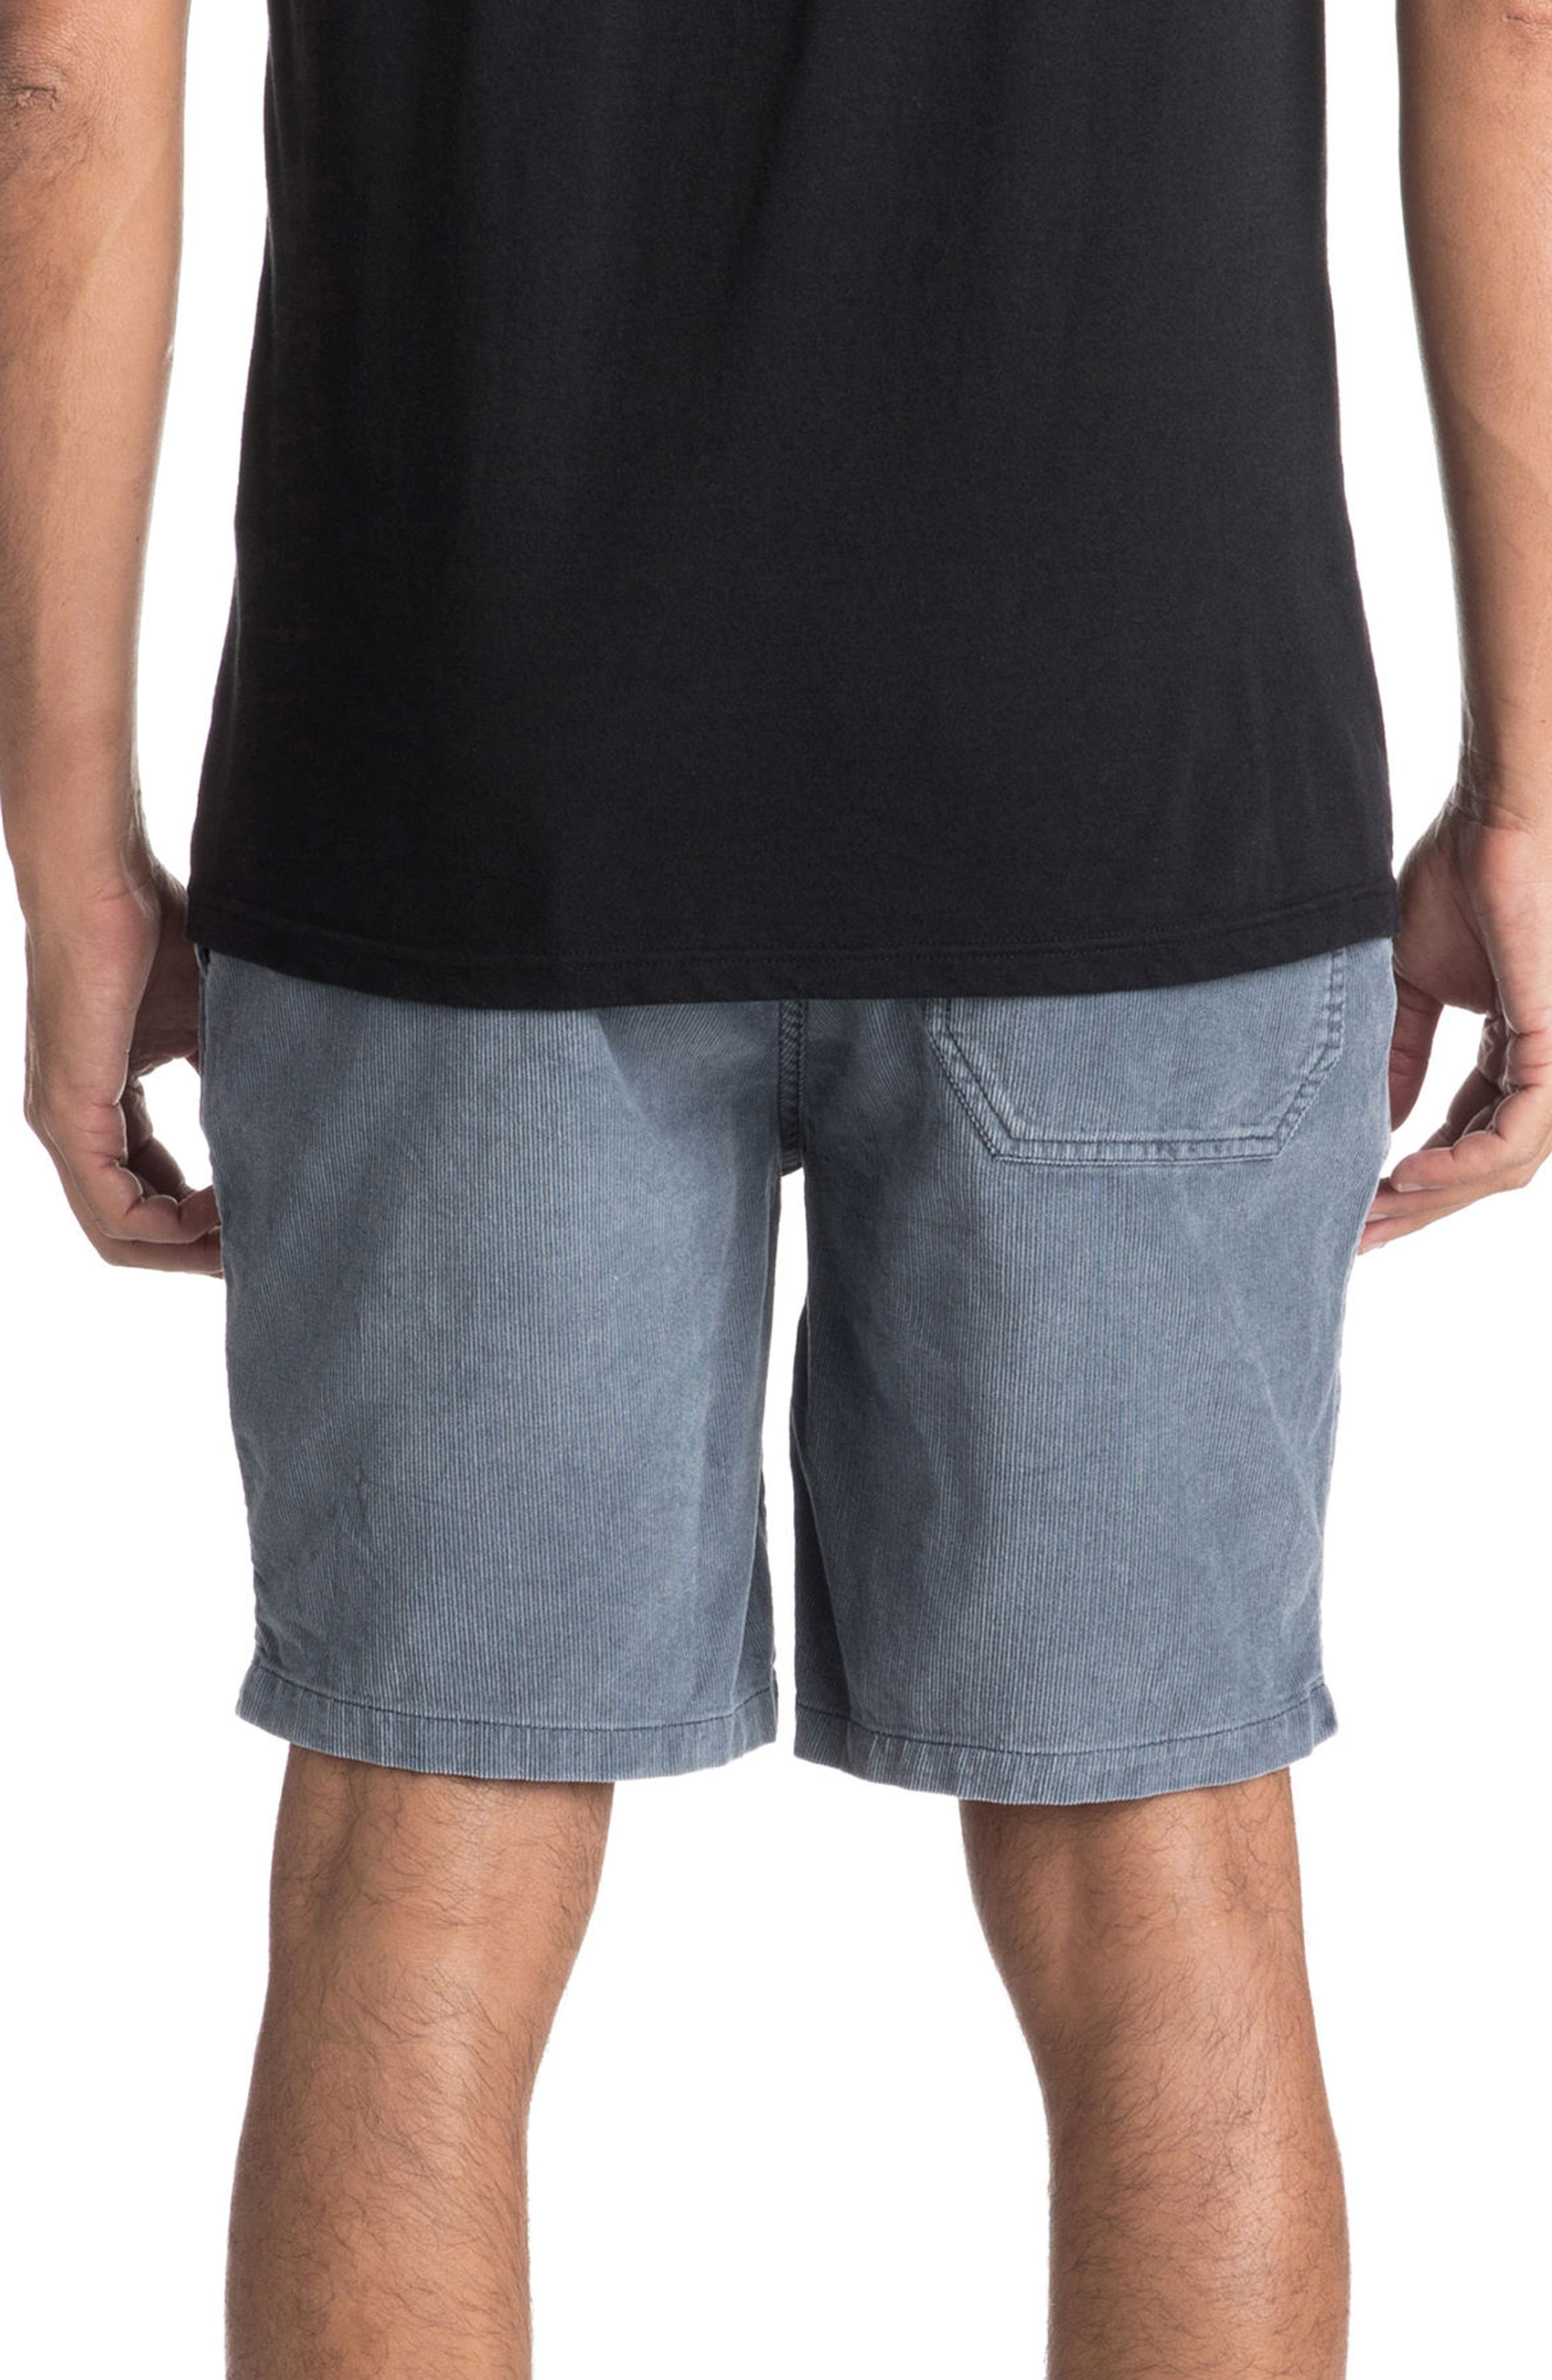 Peaky Mind Shorts,                             Alternate thumbnail 2, color,                             400